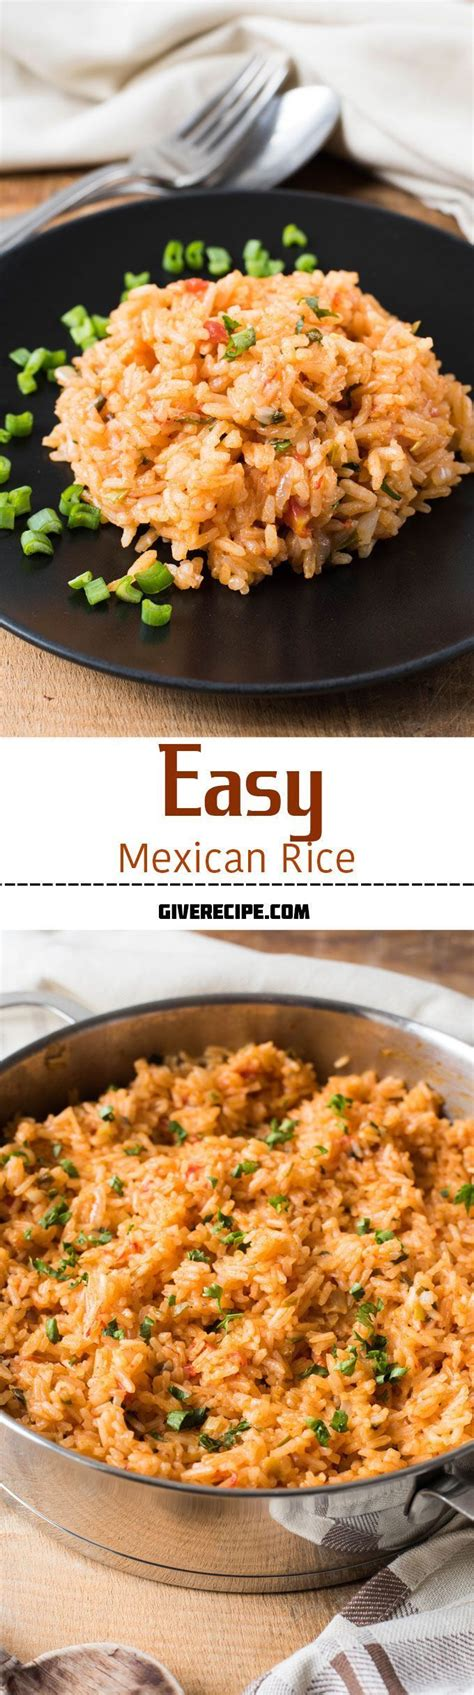 vegetarian mexican rice recipe easy 25 best ideas about healthy mexican rice on